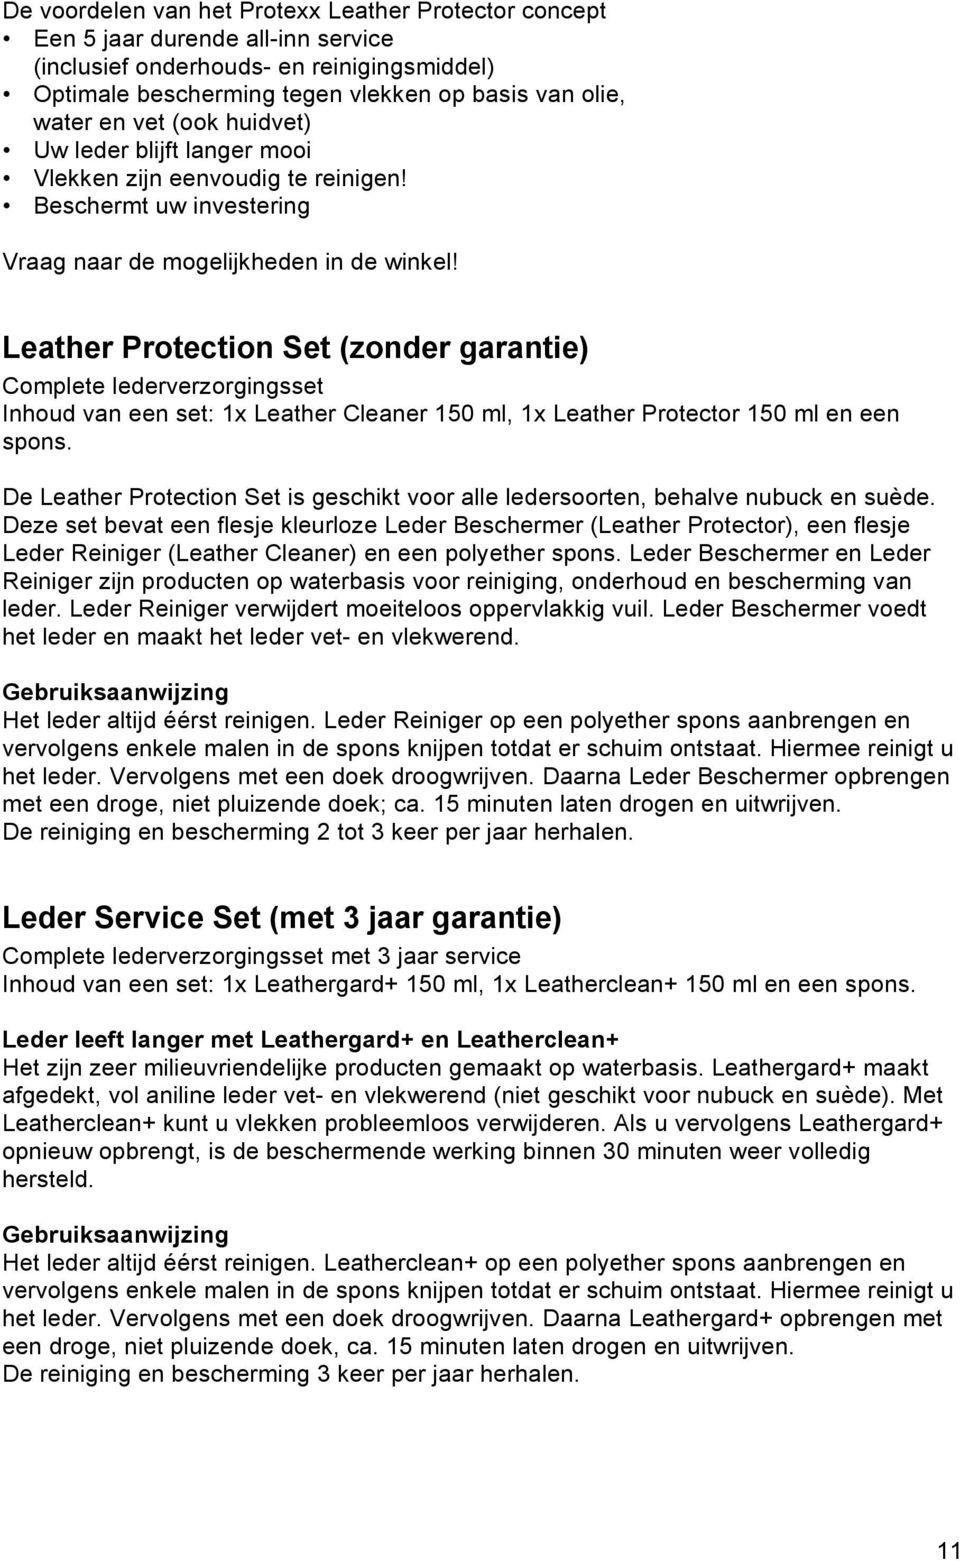 Leather Protection Set (zonder garantie) Complete lederverzorgingsset Inhoud van een set: 1x Leather Cleaner 150 ml, 1x Leather Protector 150 ml en een spons.